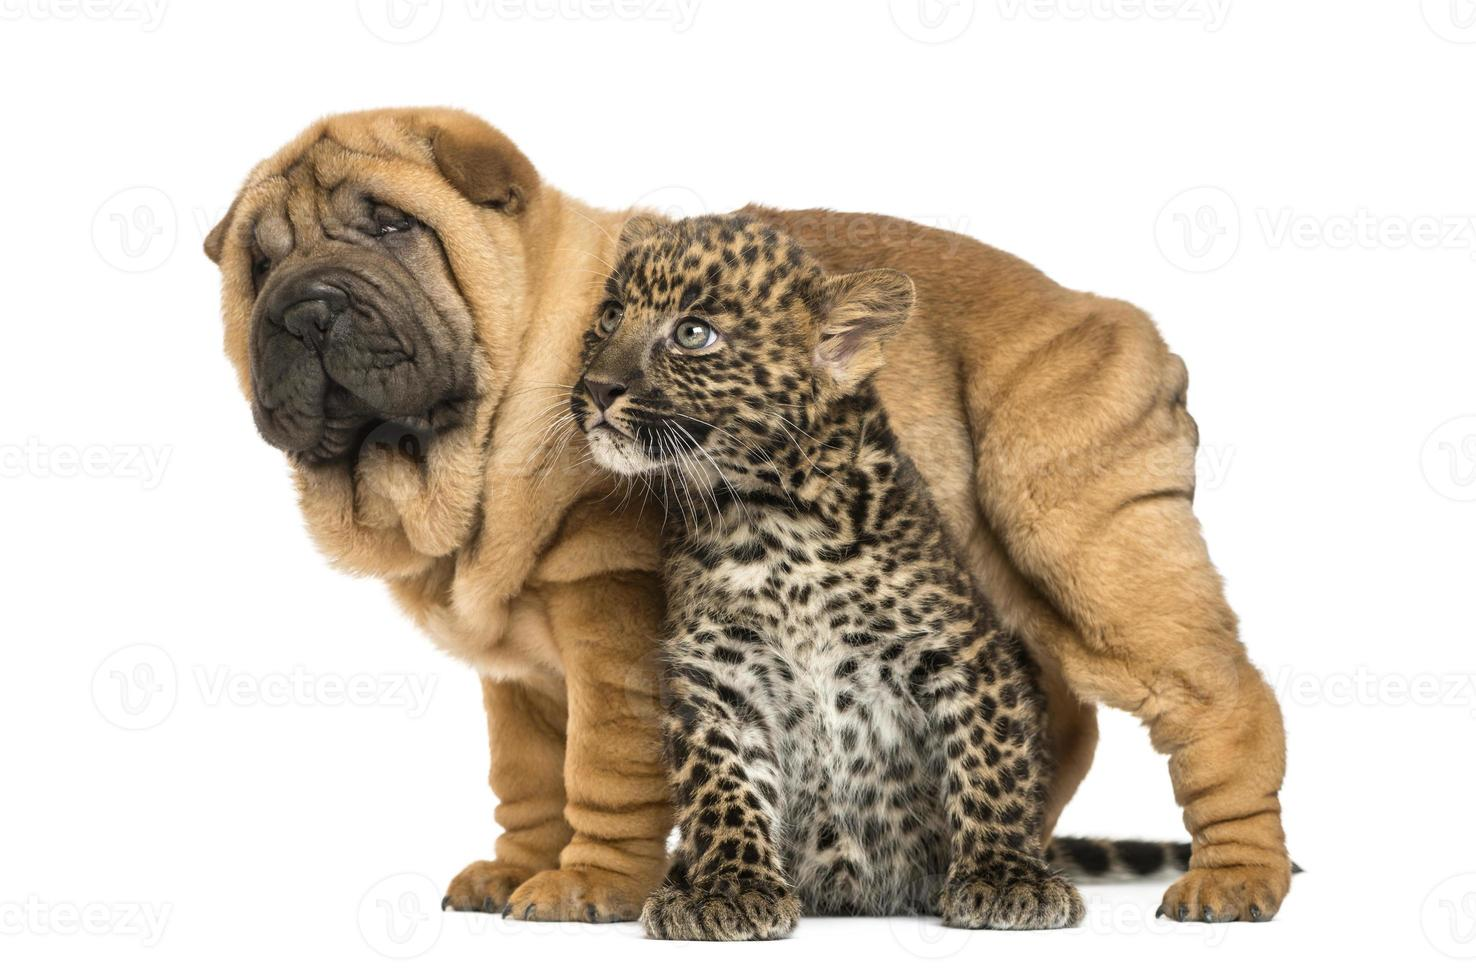 Shar pei puppy standing over a spotted Leopard cub, isolated photo